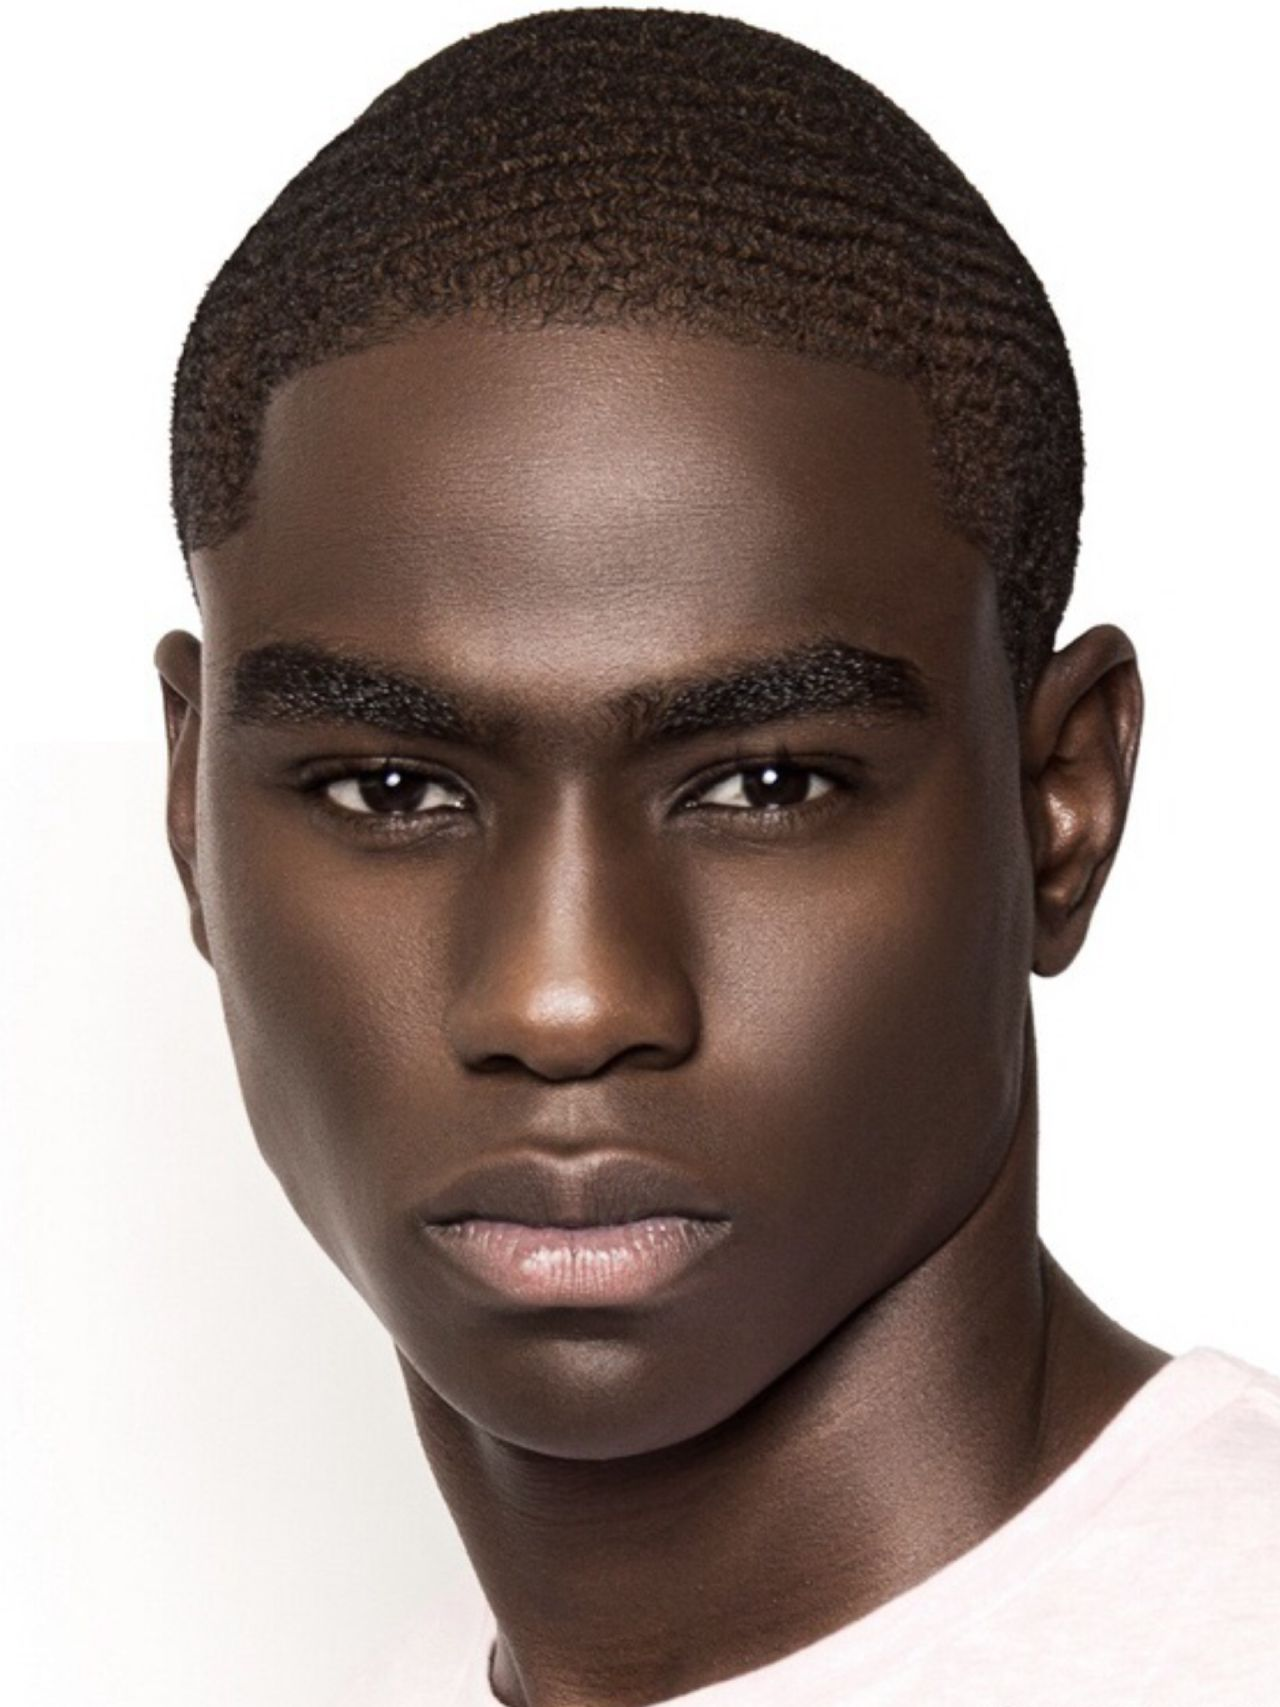 Pin By Men On Beautiful Creature Black Beauties Beauty Handsome Faces